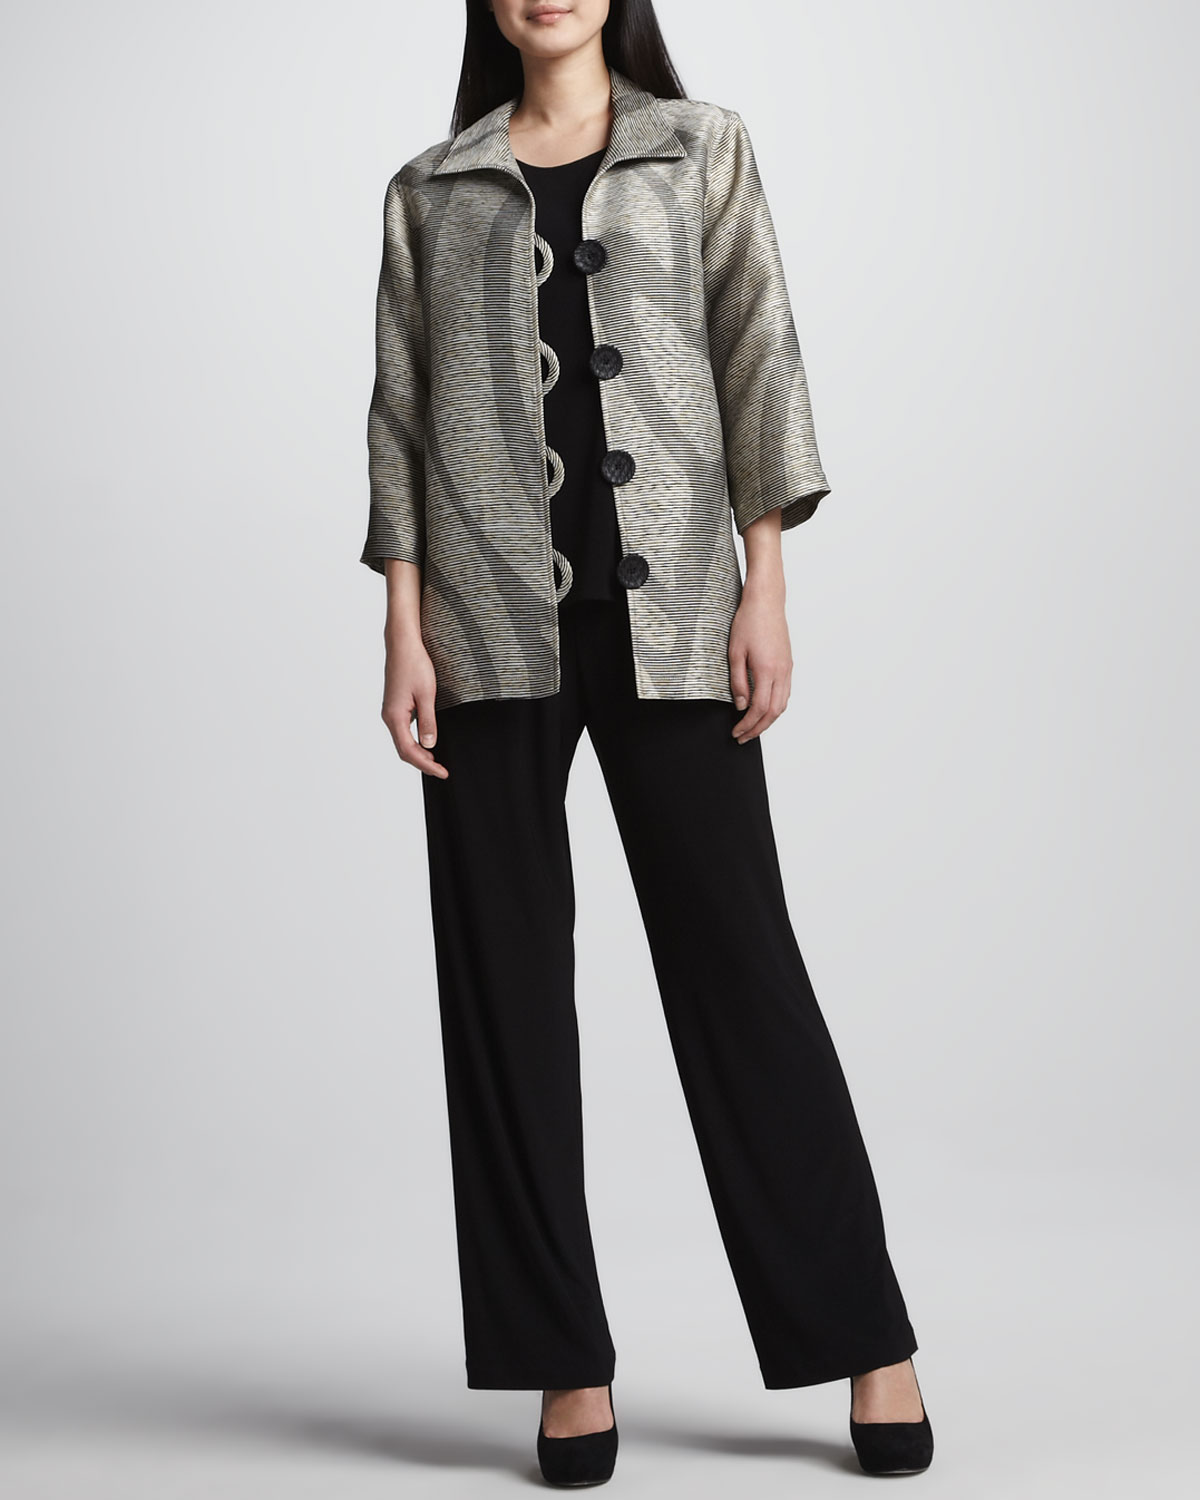 Swirl Easy Shirt Jacket, Stretch-Knit Long Tank, Straight-Leg Jersey Pants